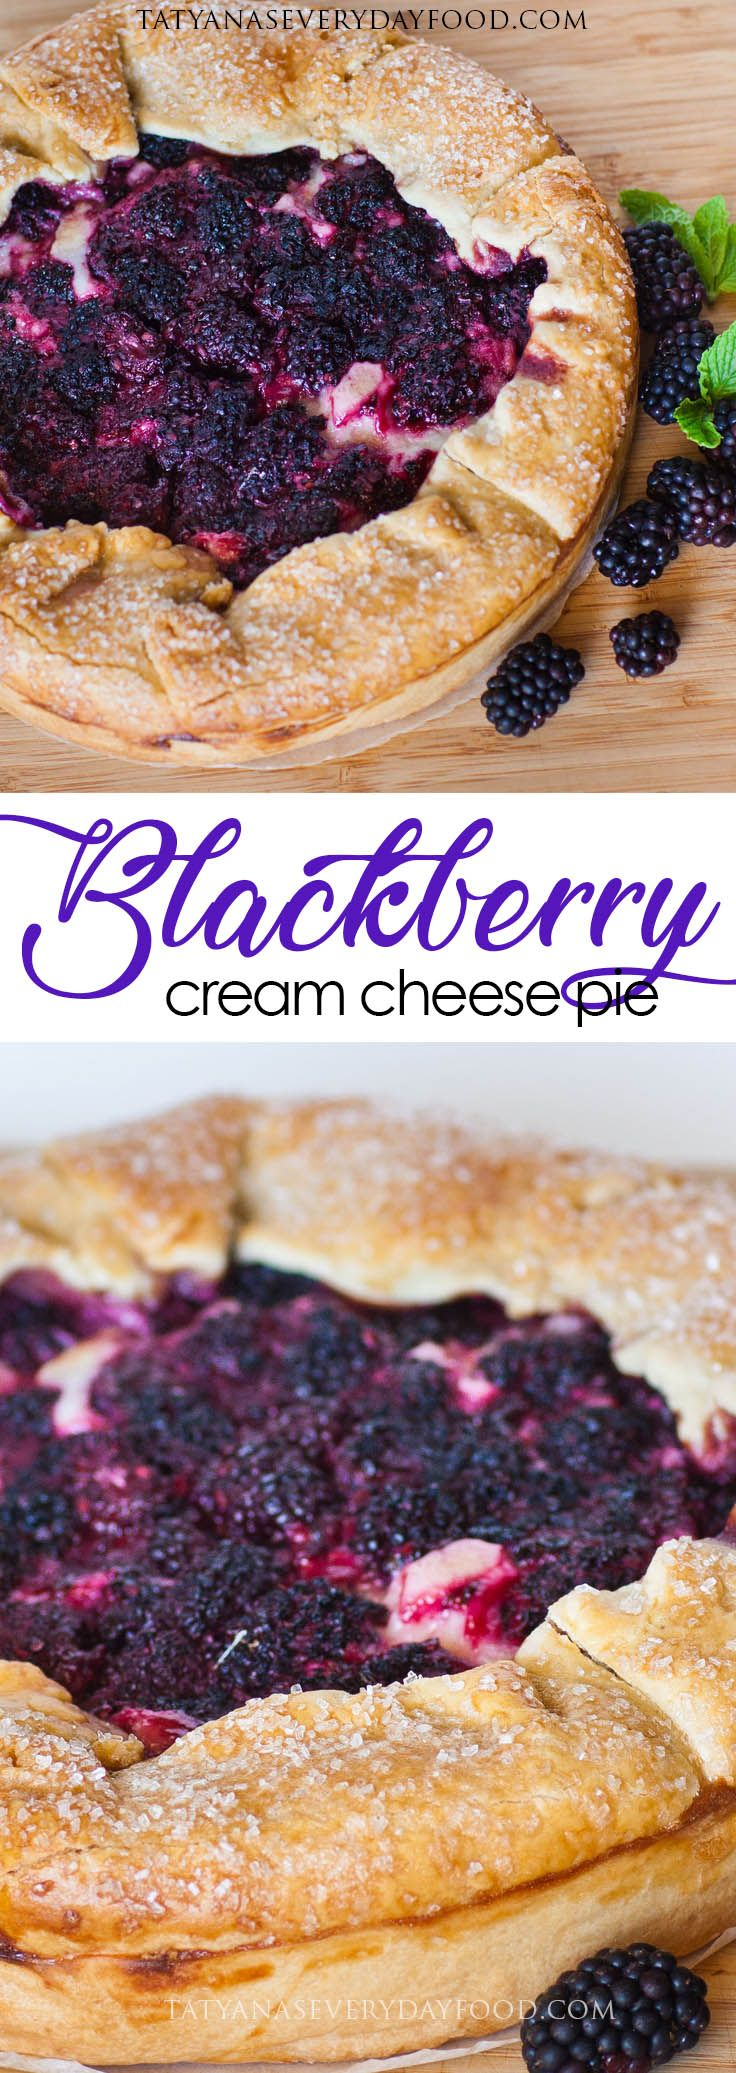 Blackberry Pie with Cream Cheese Filling - Tatyanas Everyday Food